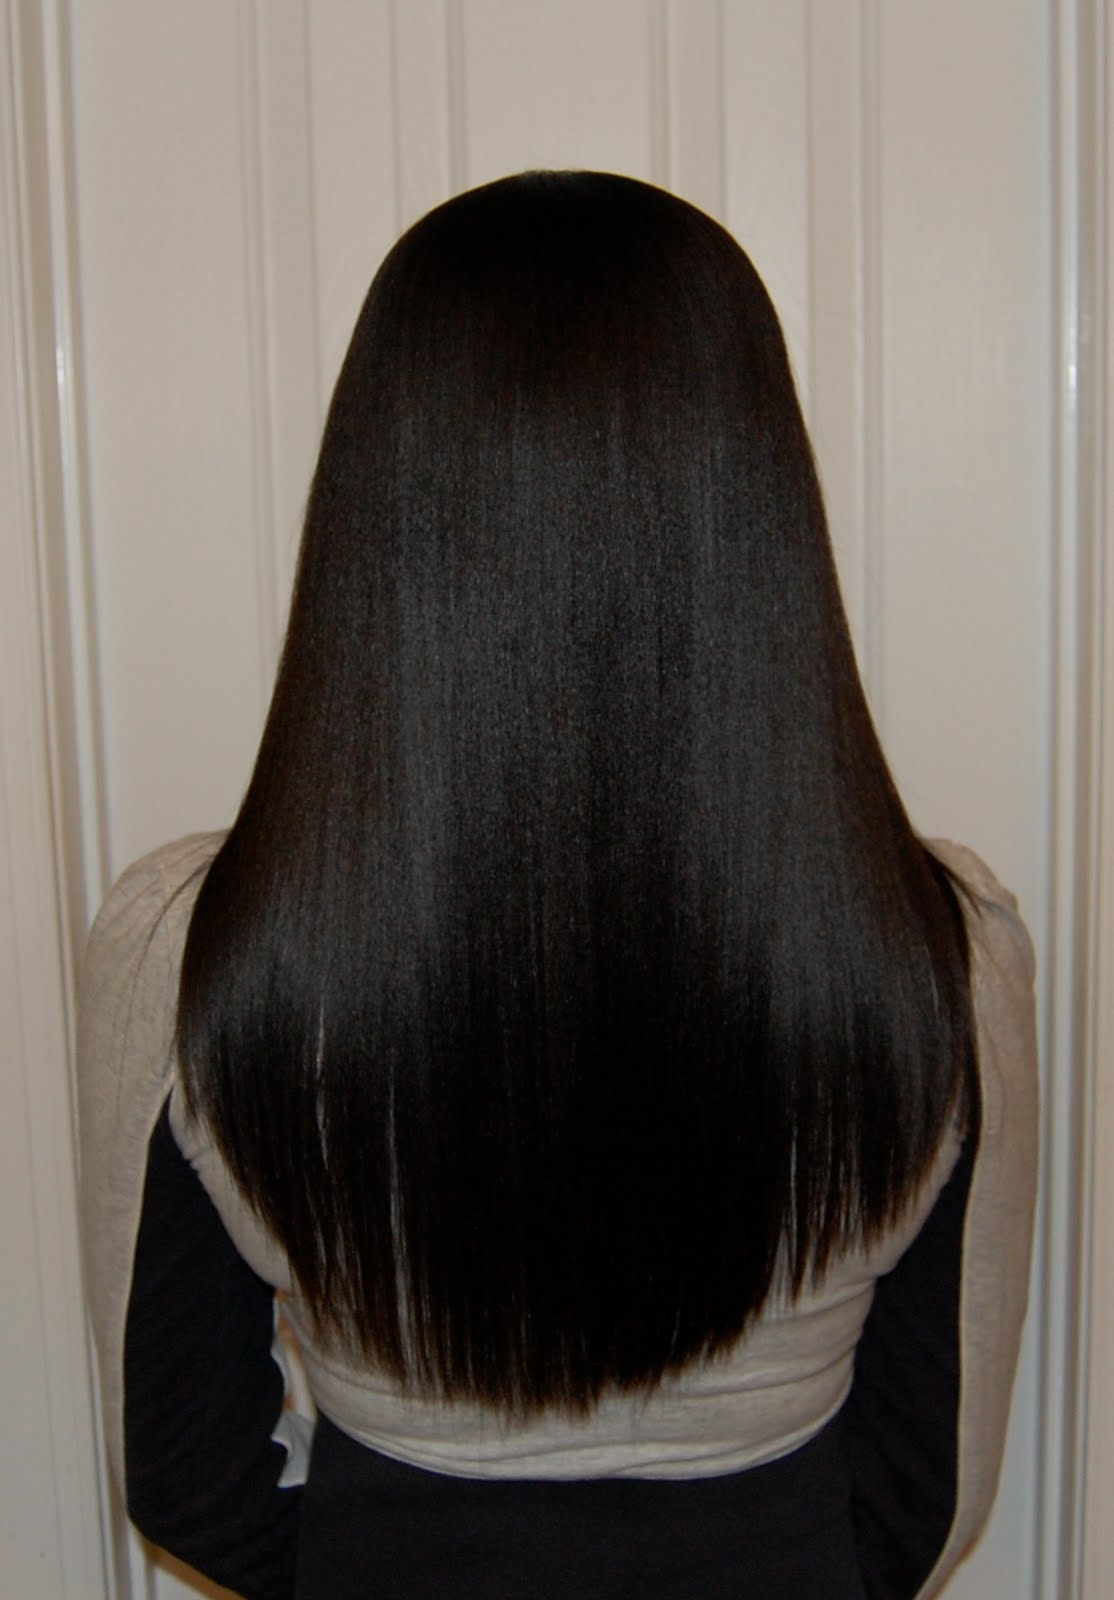 Growing Black Hair To Great Lengths April 2013